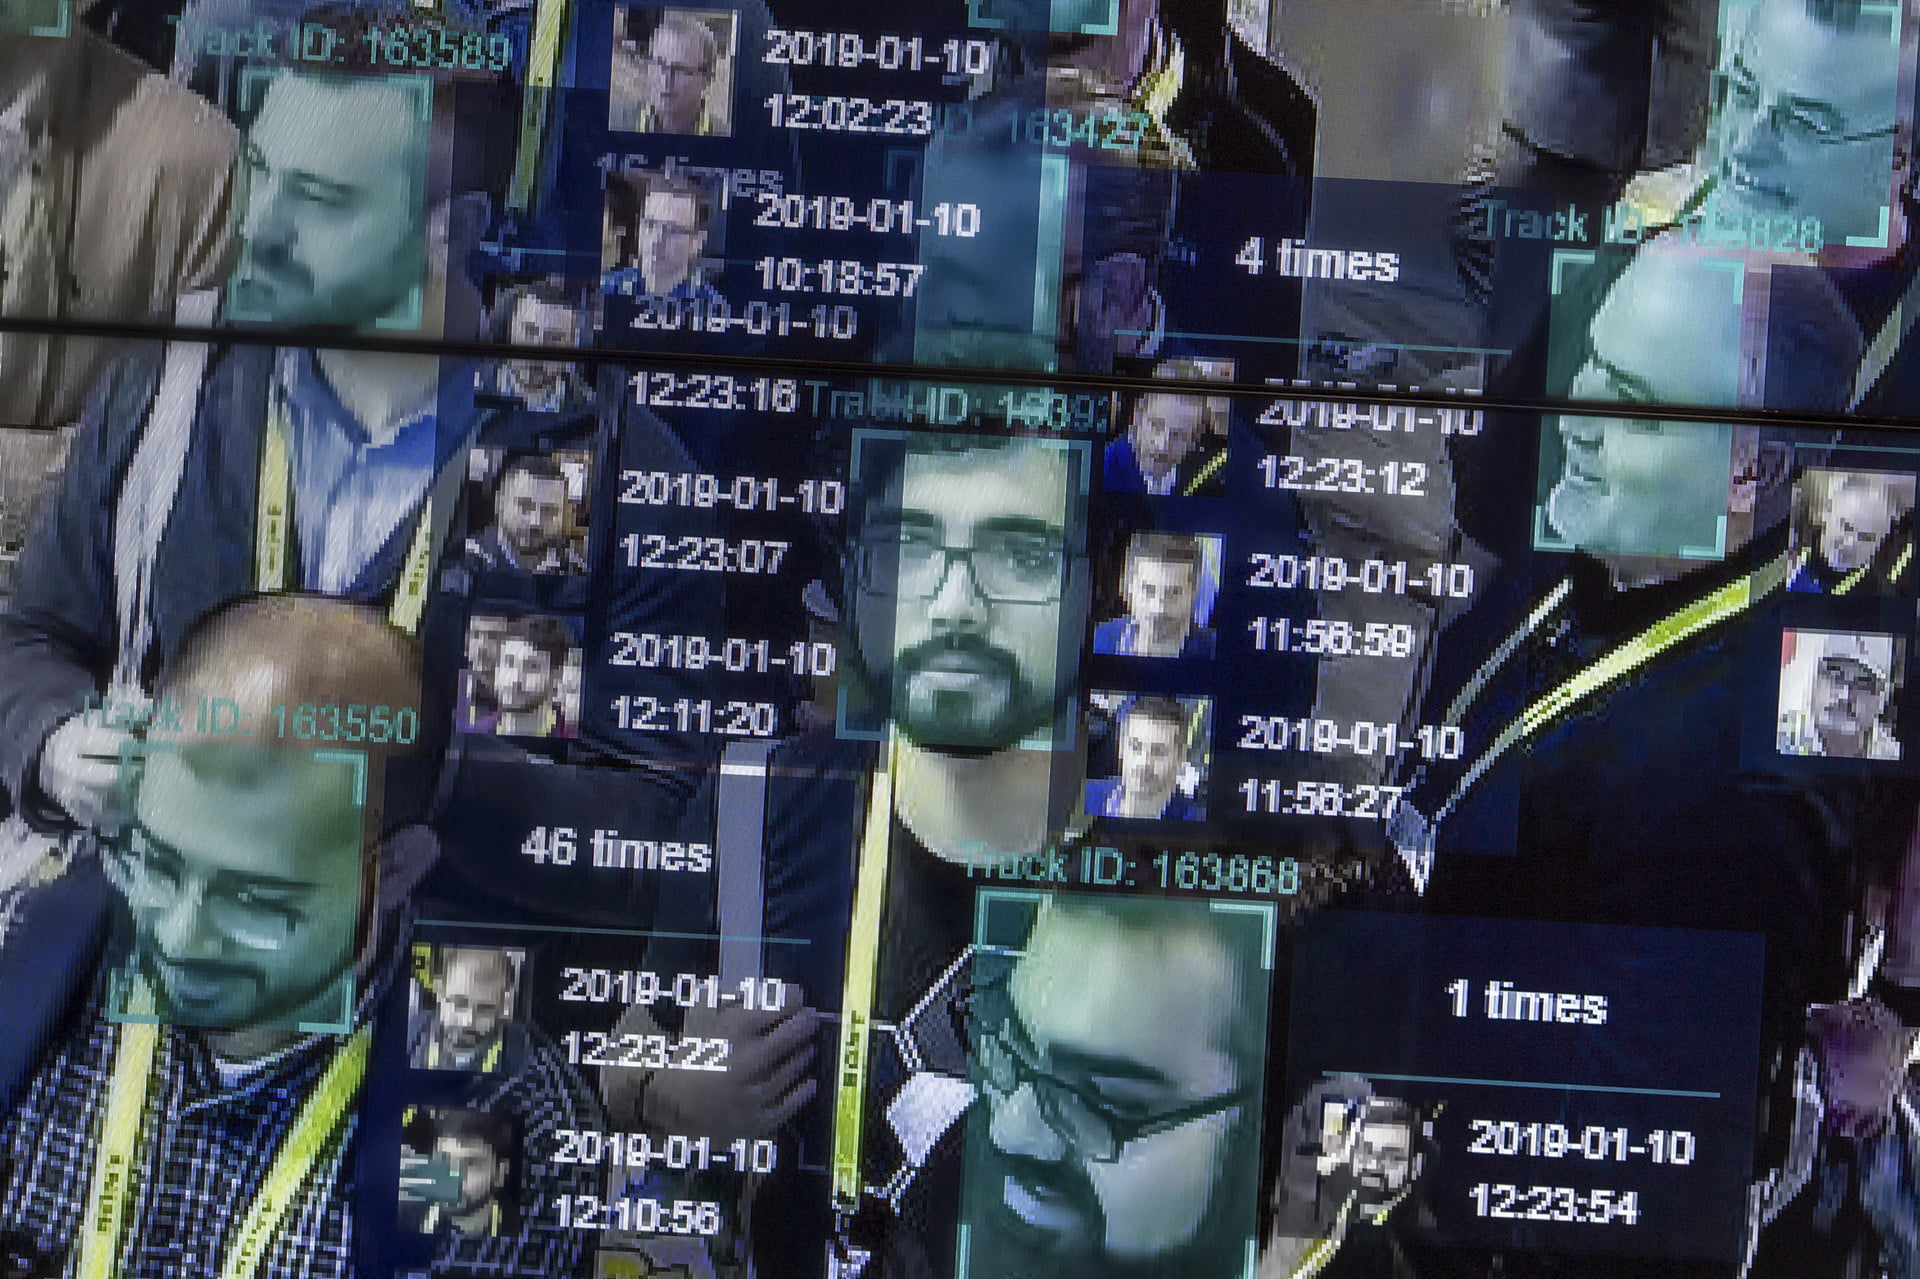 Who thought it was a good idea to have facial recognition software?